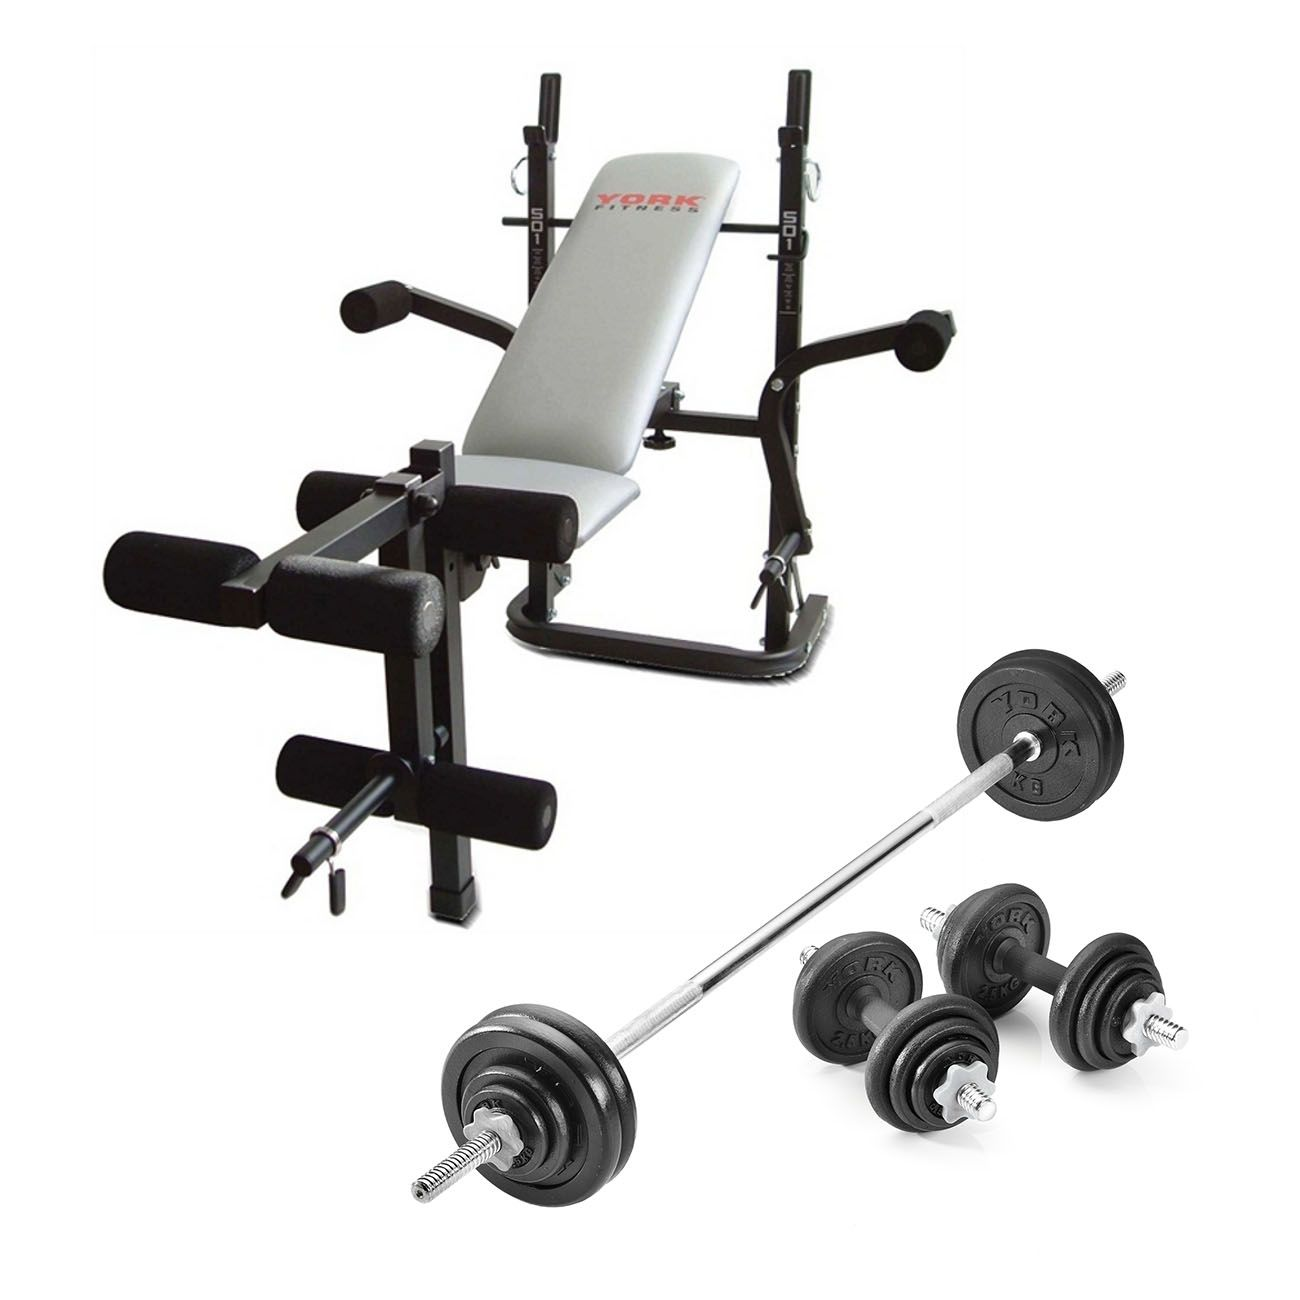 York b501 weight bench with 50kg cast iron weight set Bench and weight set